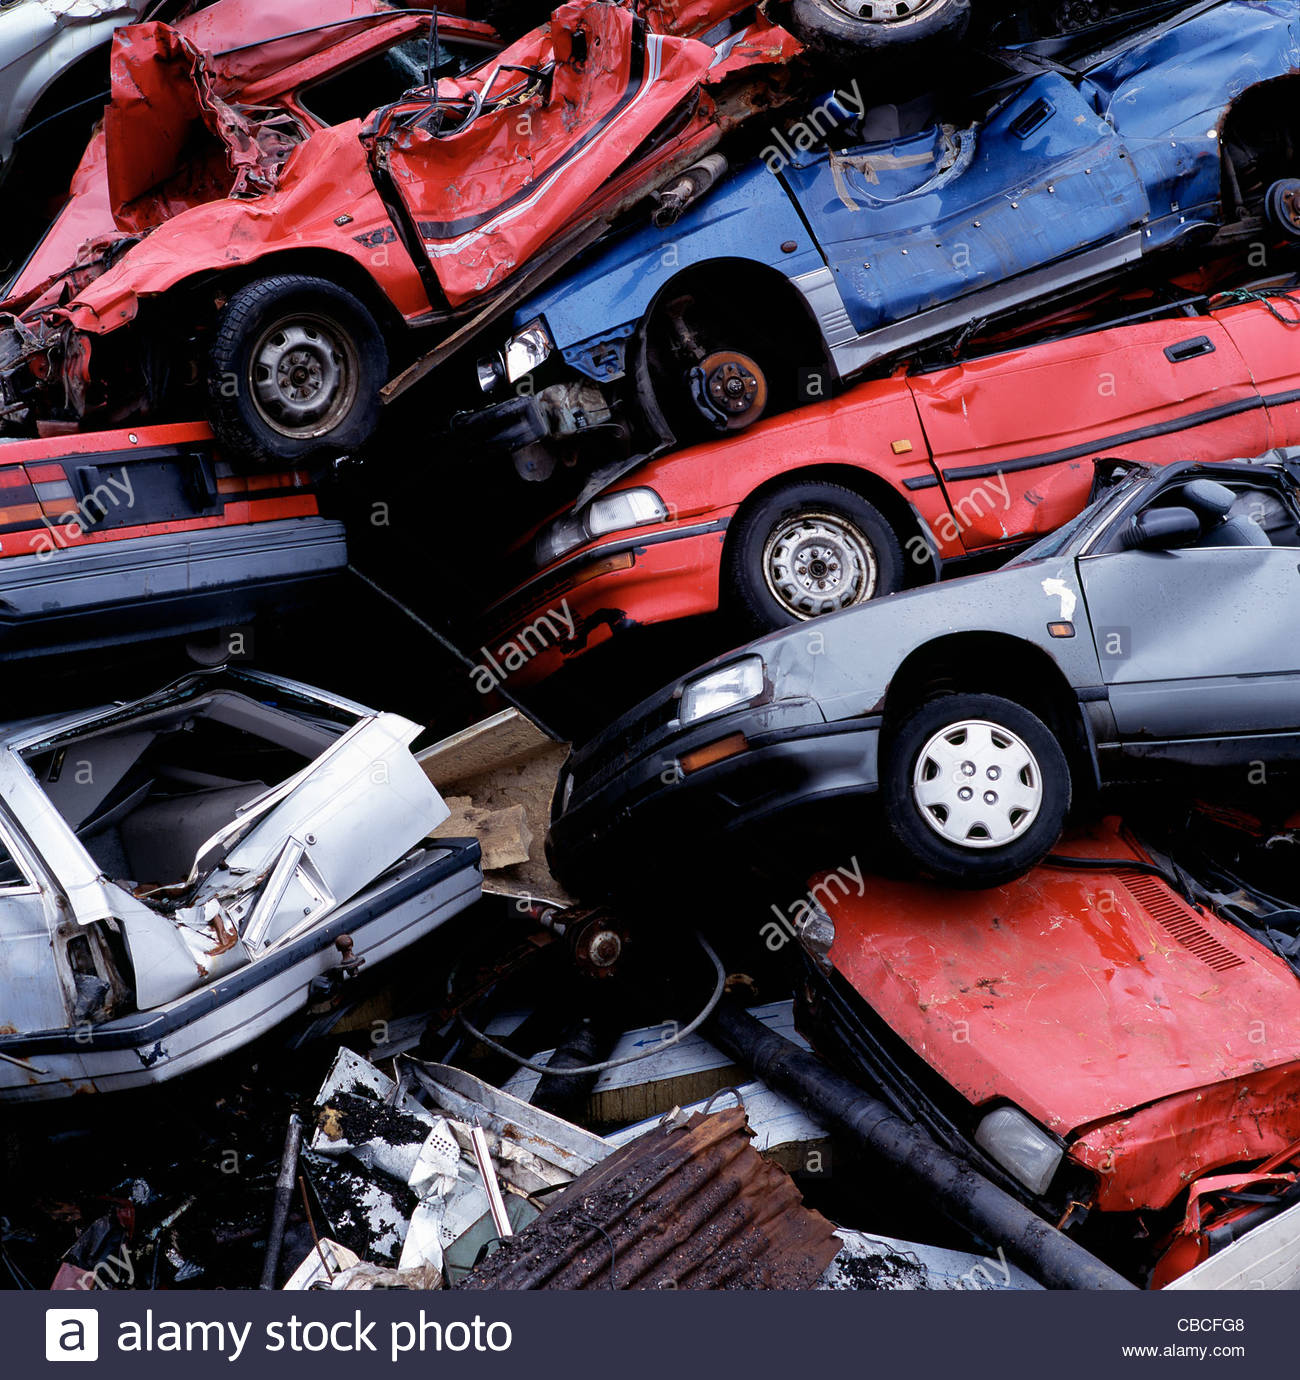 Wrecked Car Stock Photos & Wrecked Car Stock Images - Alamy